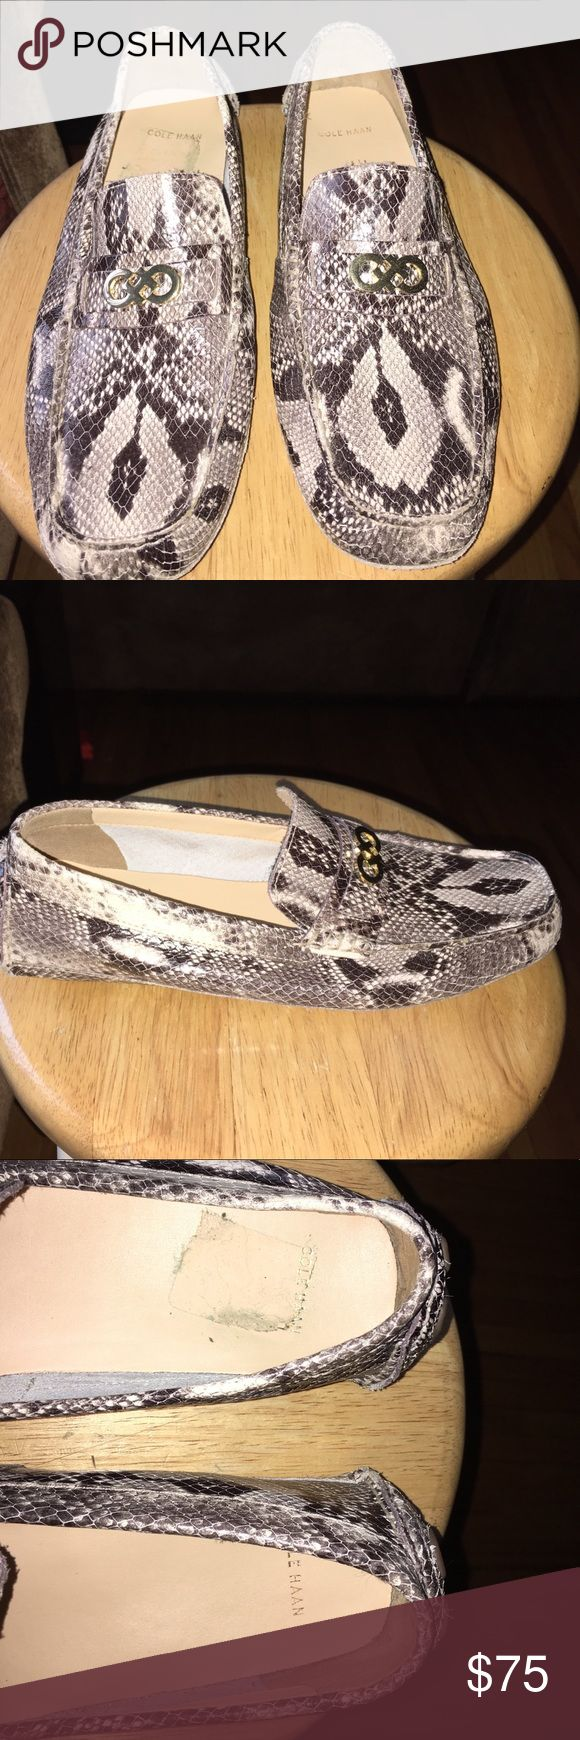 Cole Haan driver grant loafers Women's loafers. Roccia snake print. Wore a few times. In good condition! Accepting reasonable offers!! Cole Haan Shoes Flats & Loafers